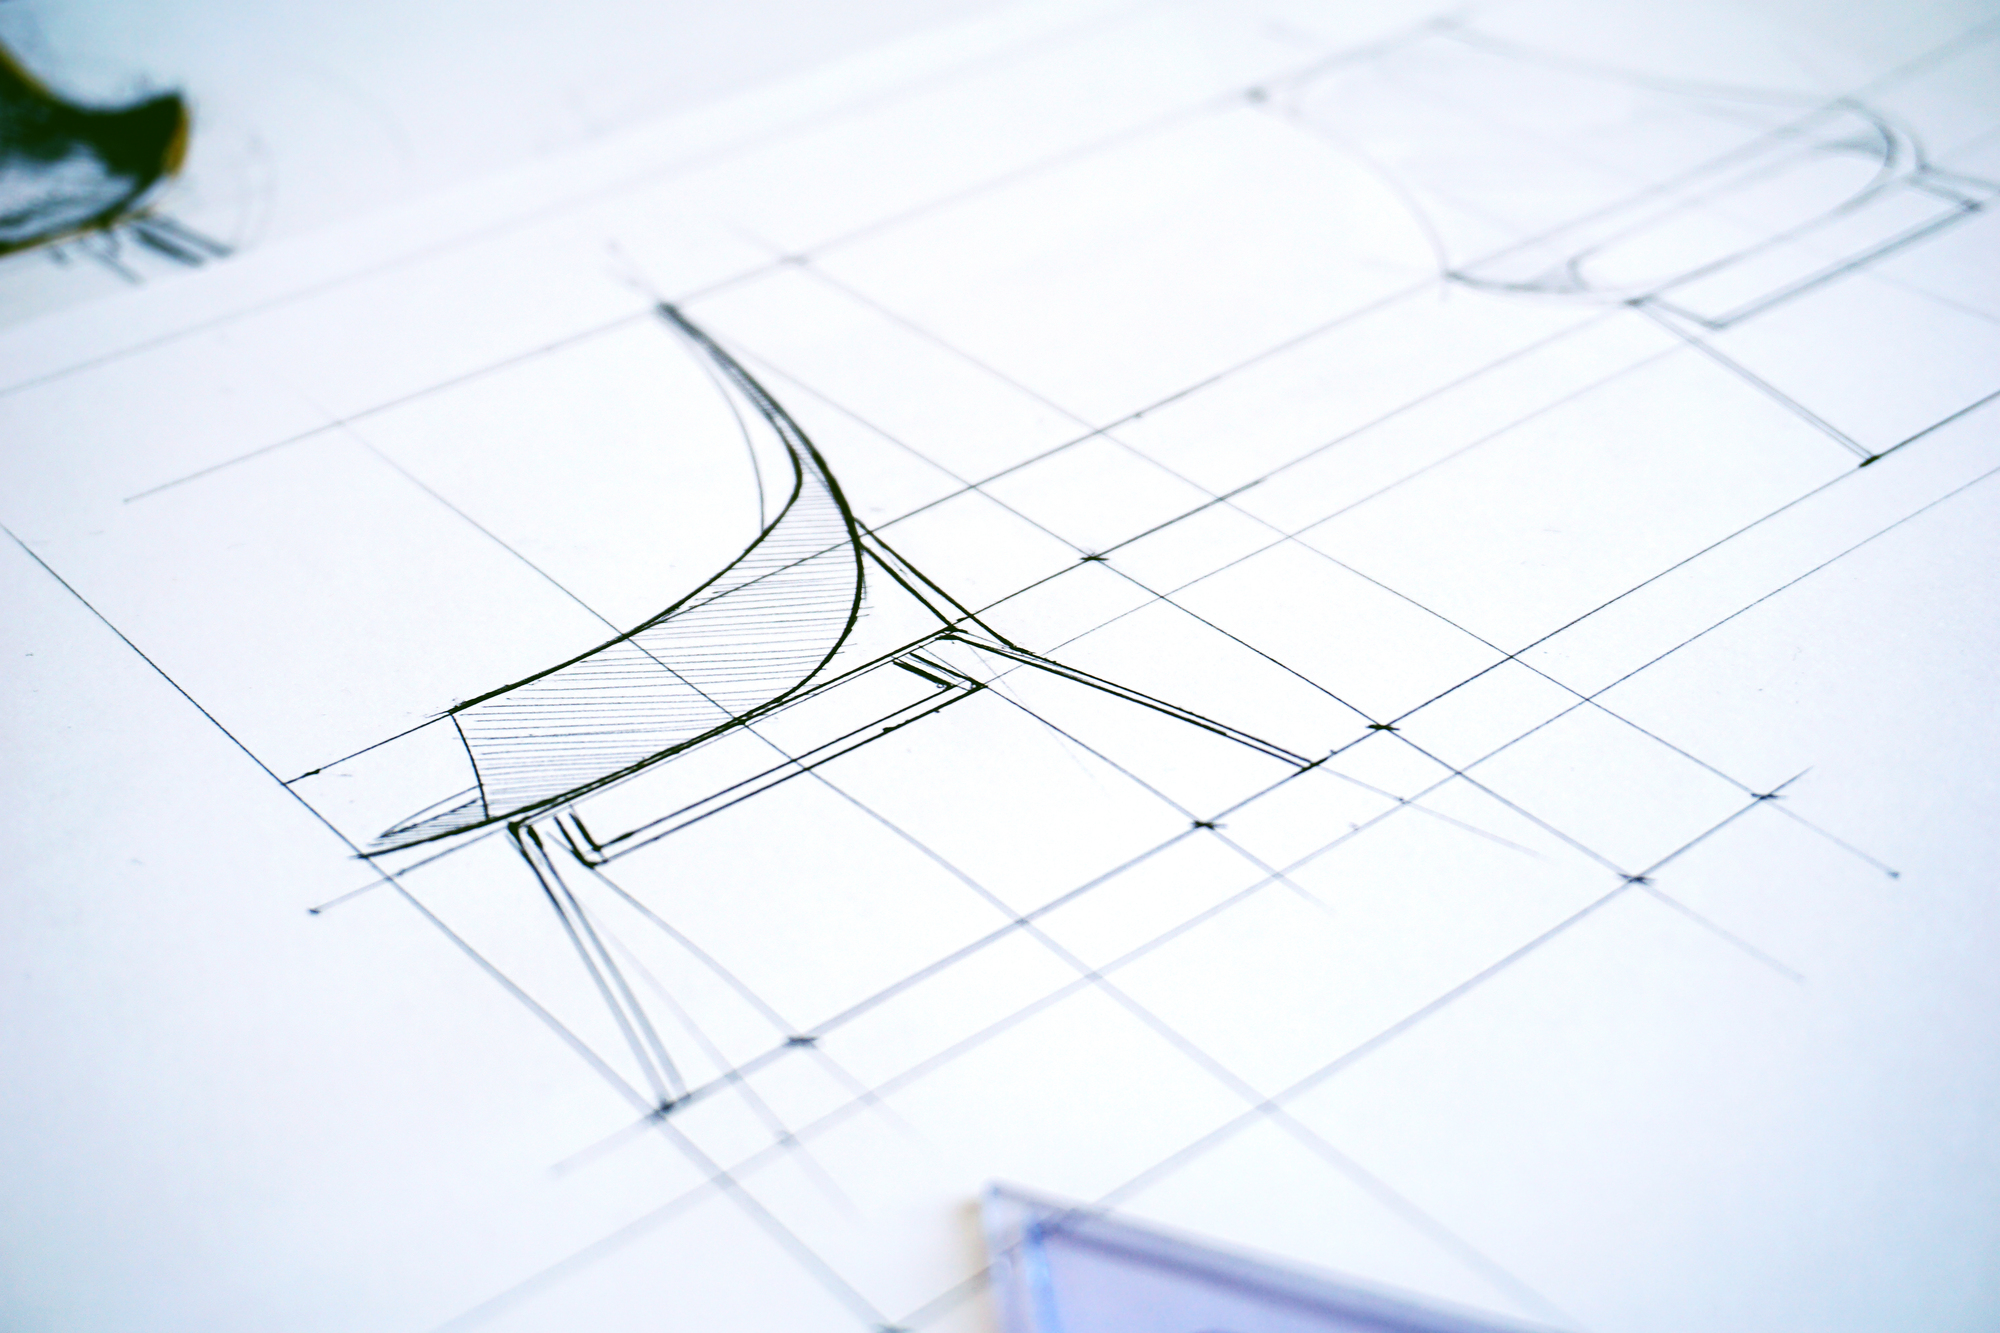 20 Technical Architecture Drawing Tips | ArchDaily